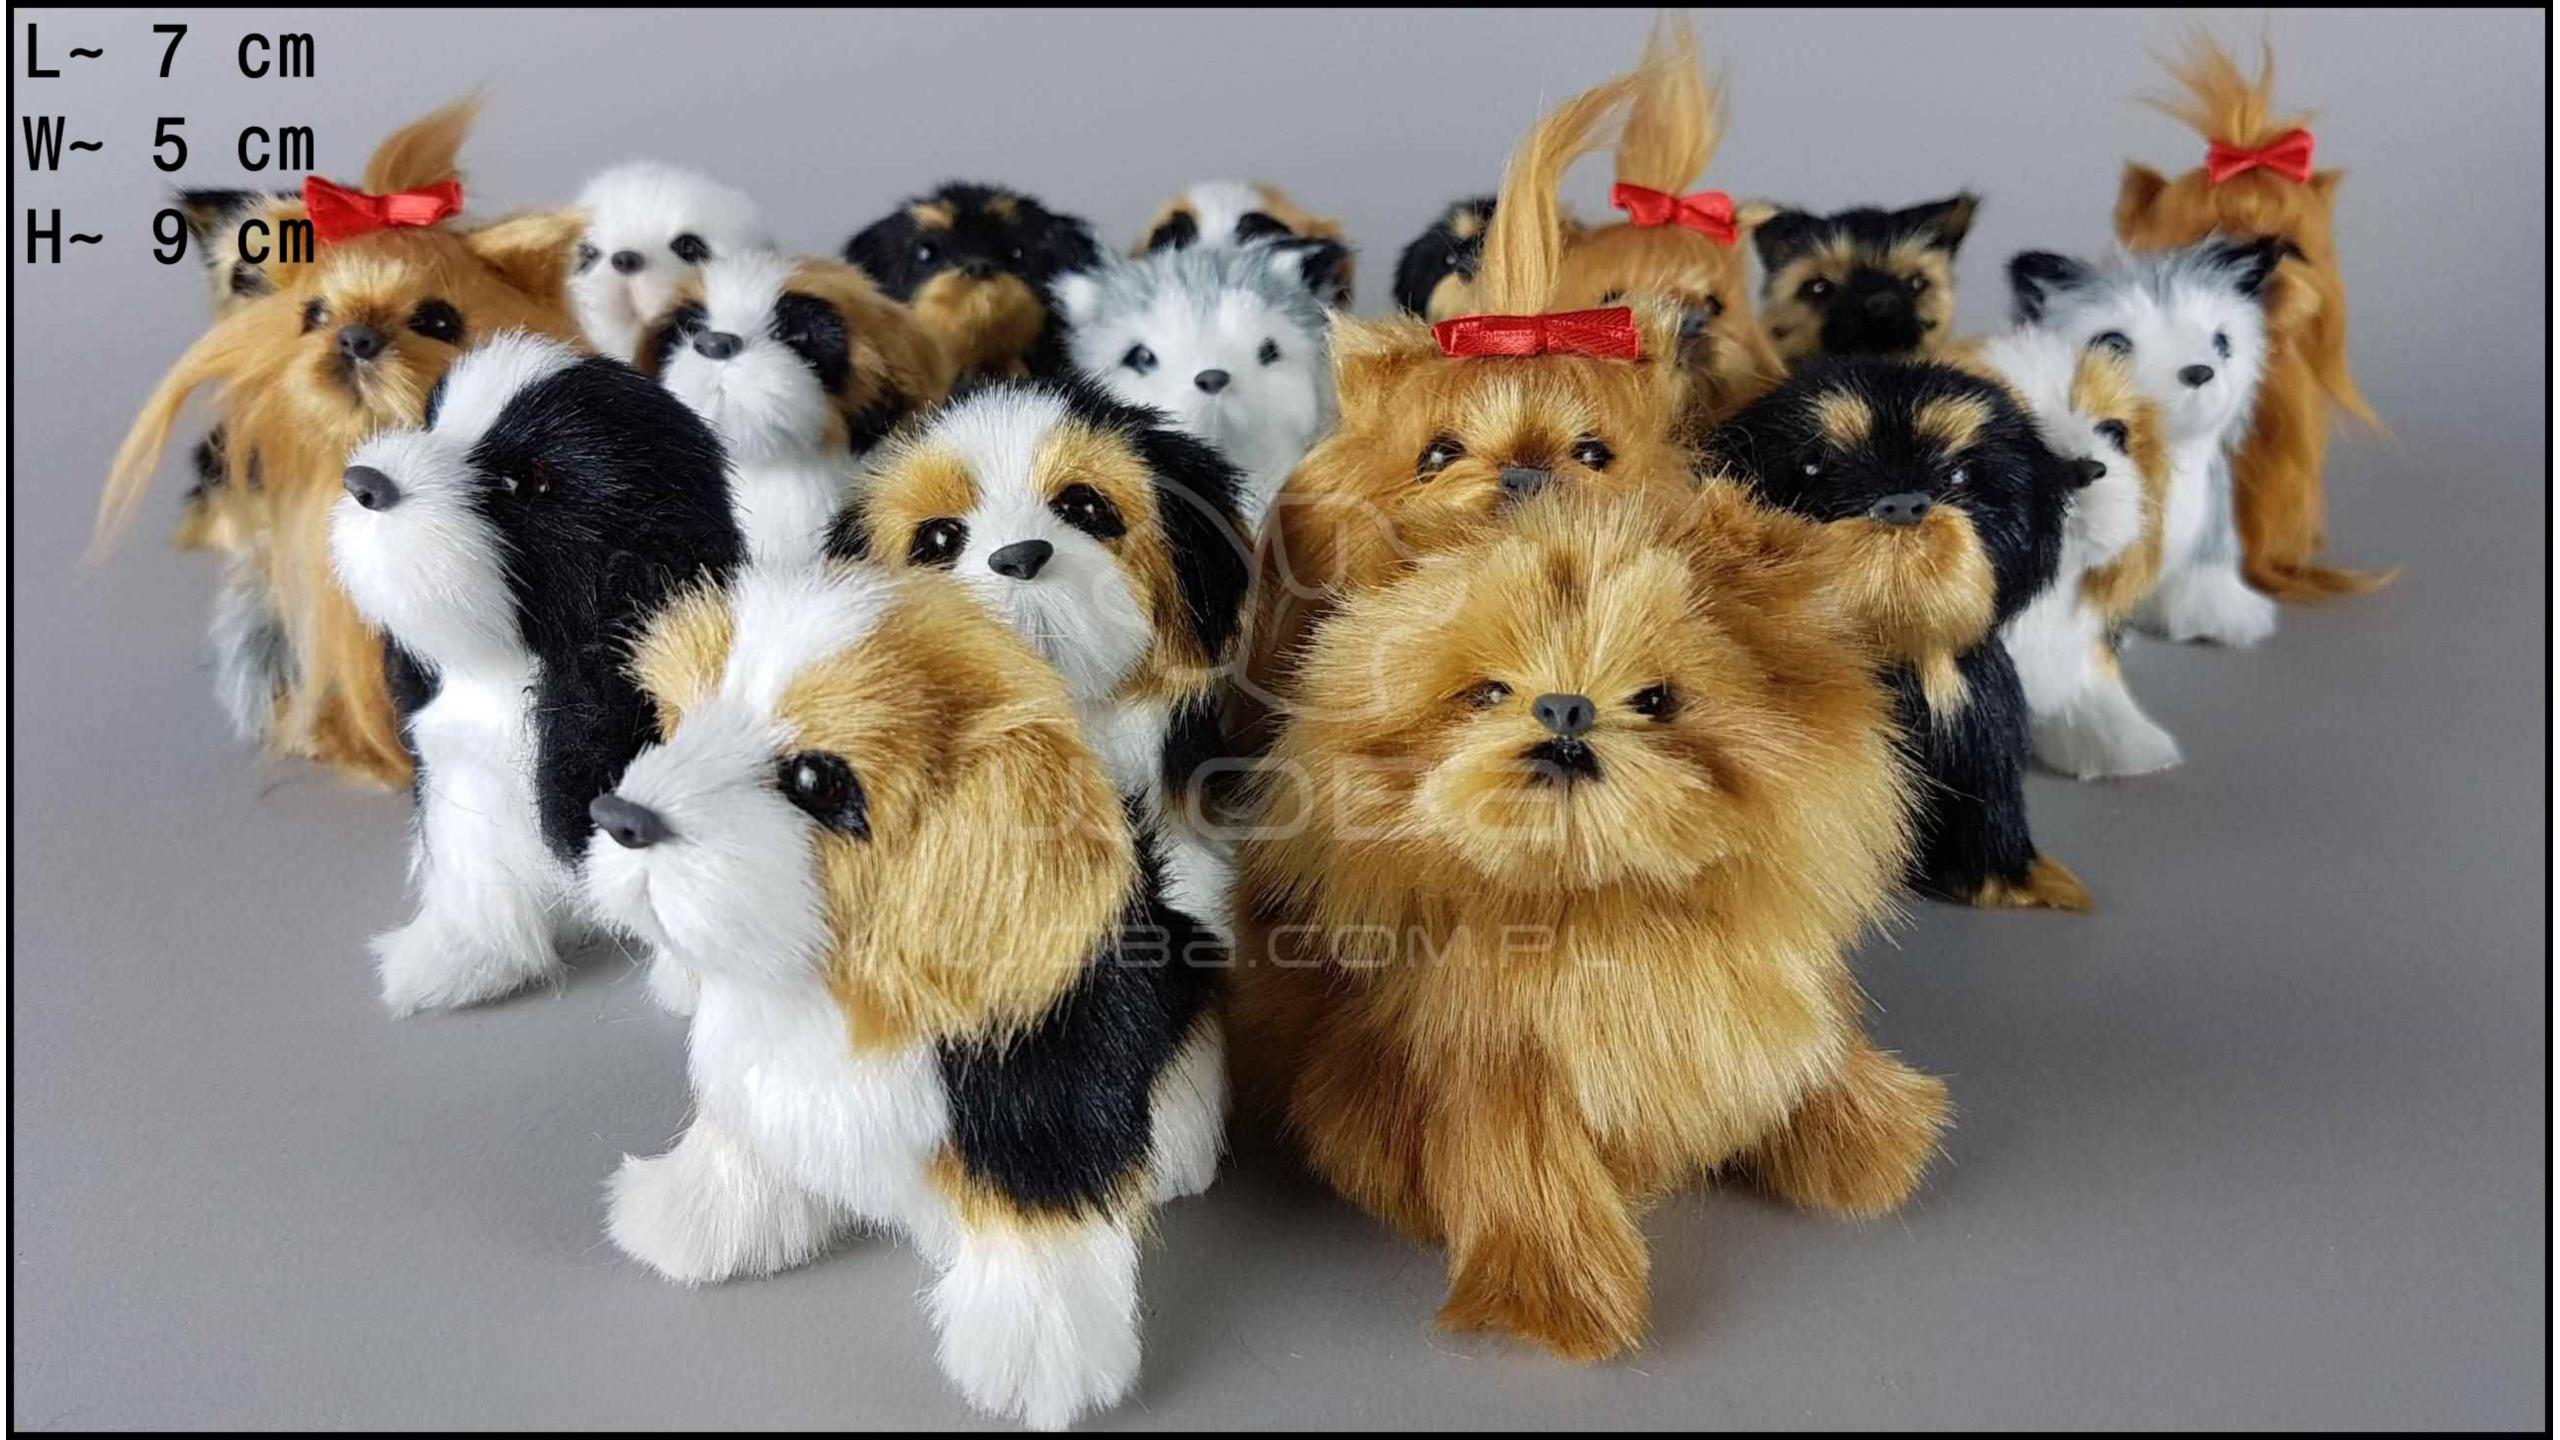 Little dogs (19 pcs in a box)